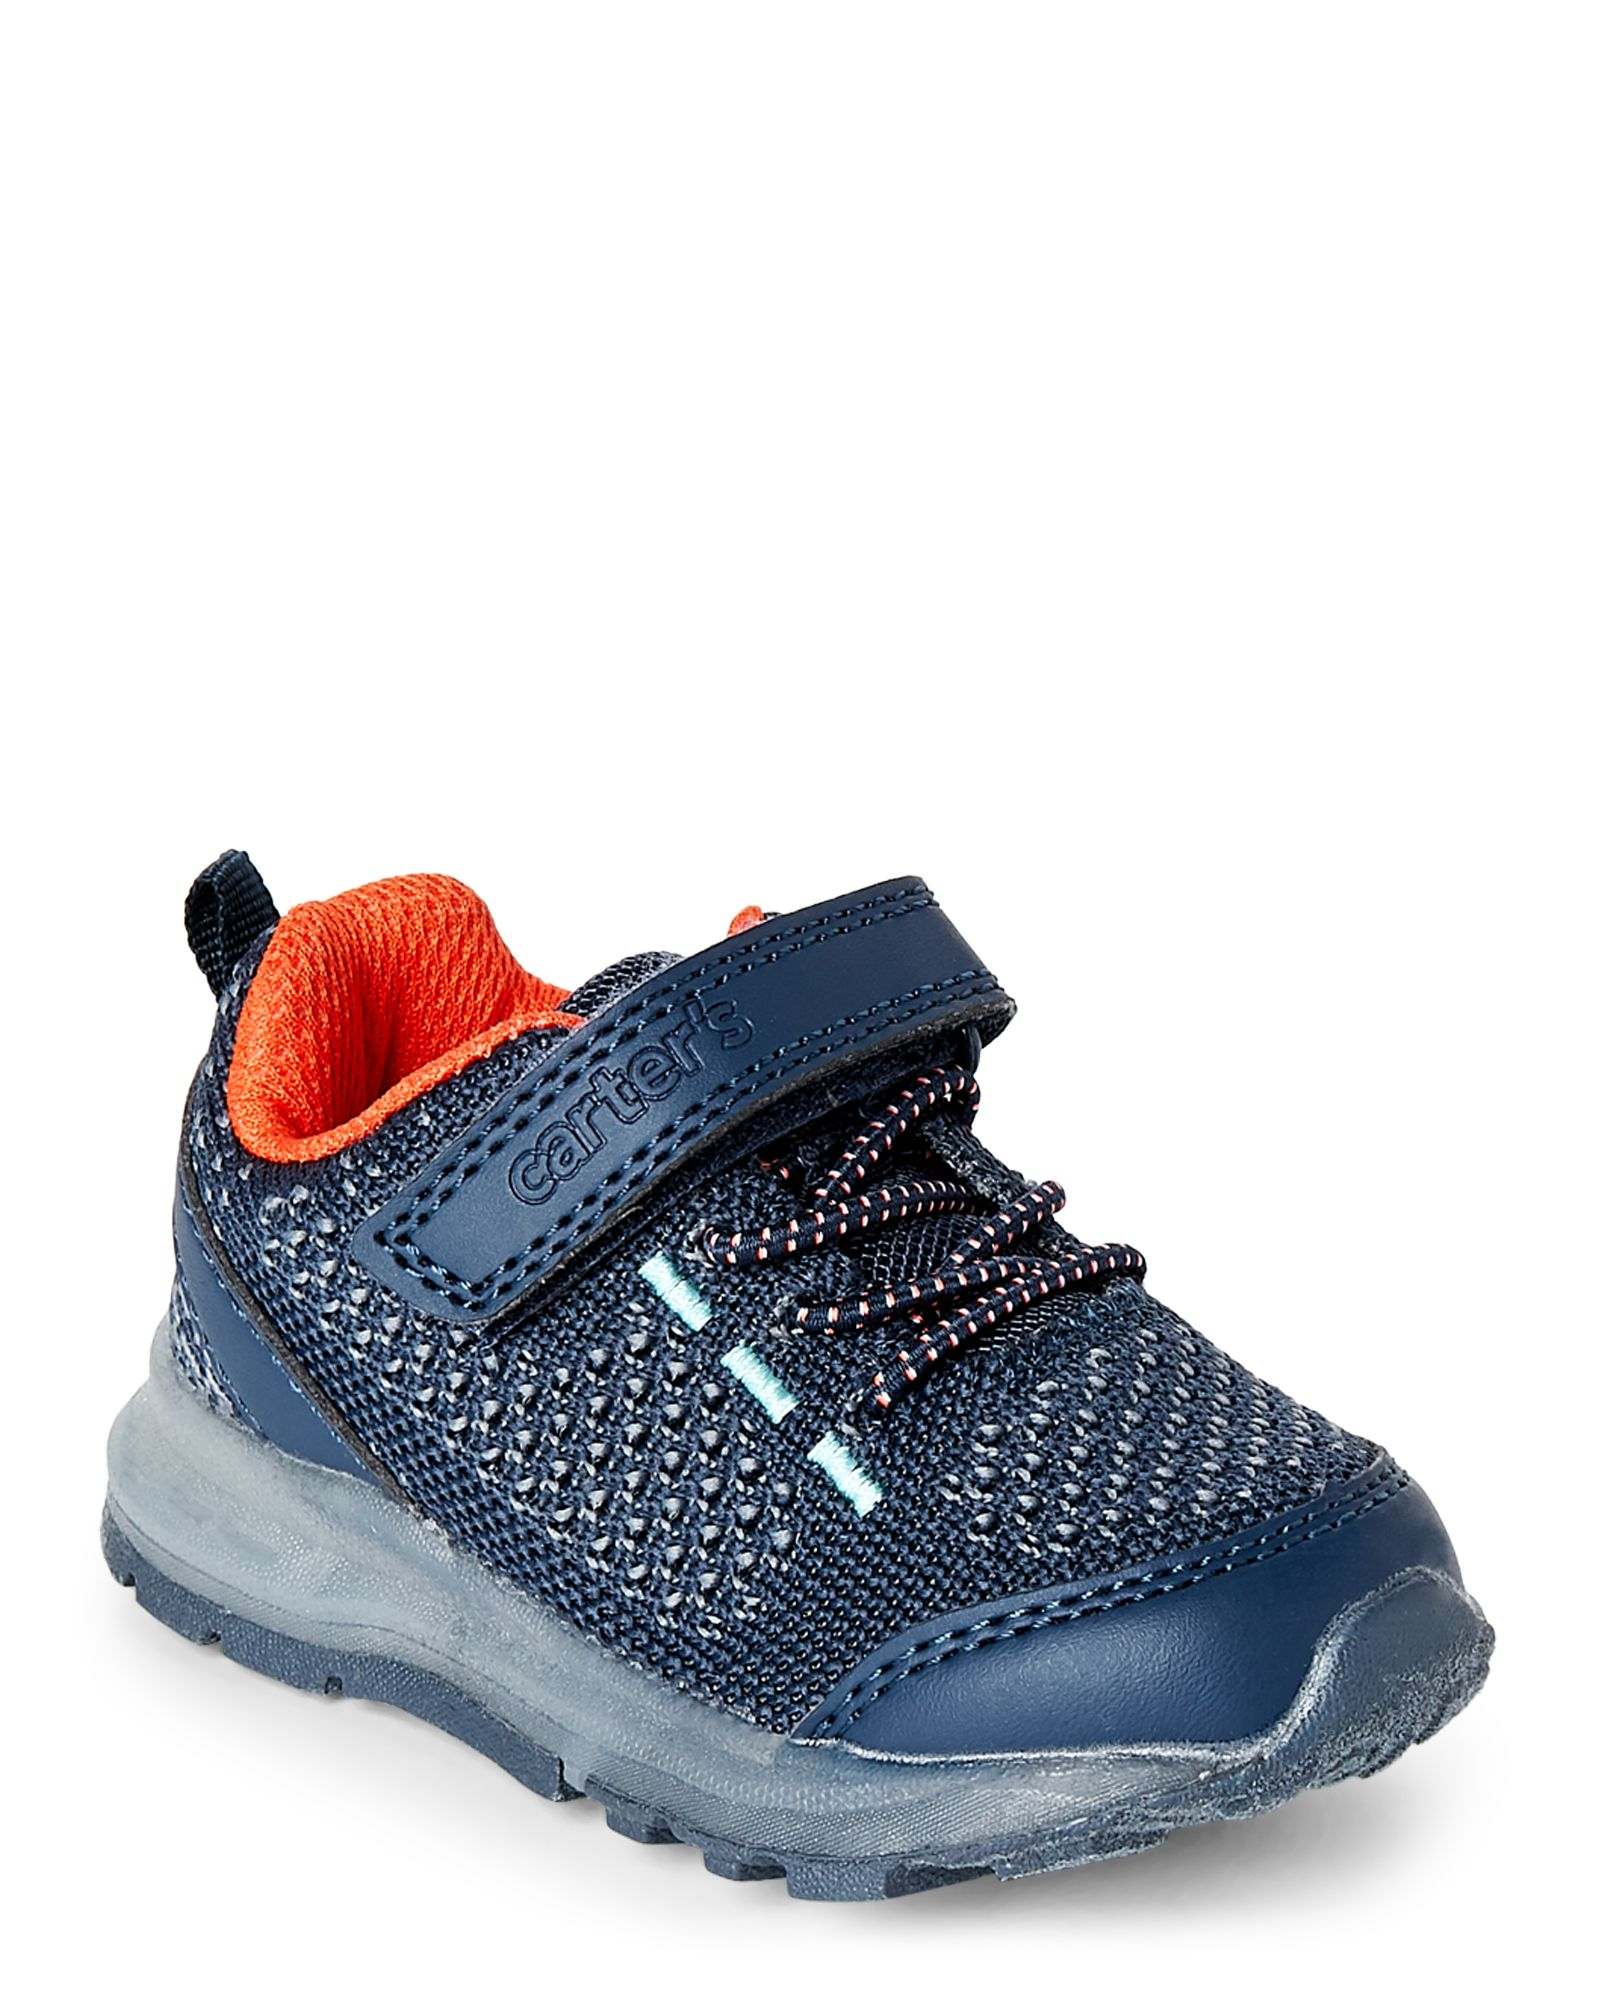 Toddler Boys Navy Record Light Up Sneakers